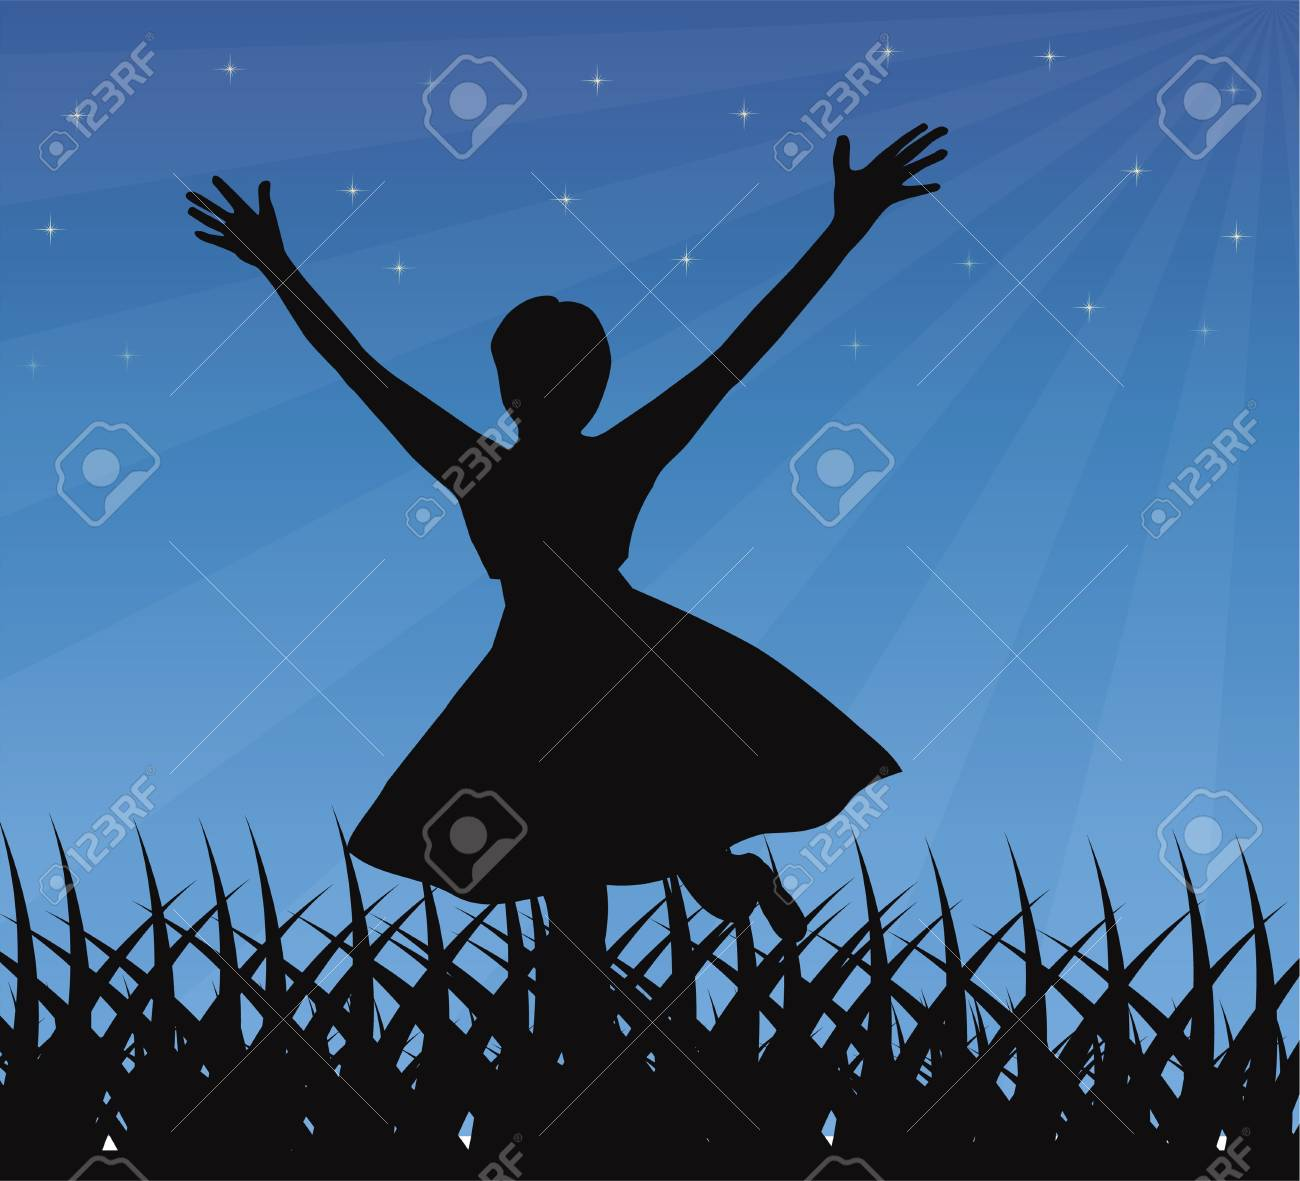 Dancing girl silhouette Stock Vector - 18977738